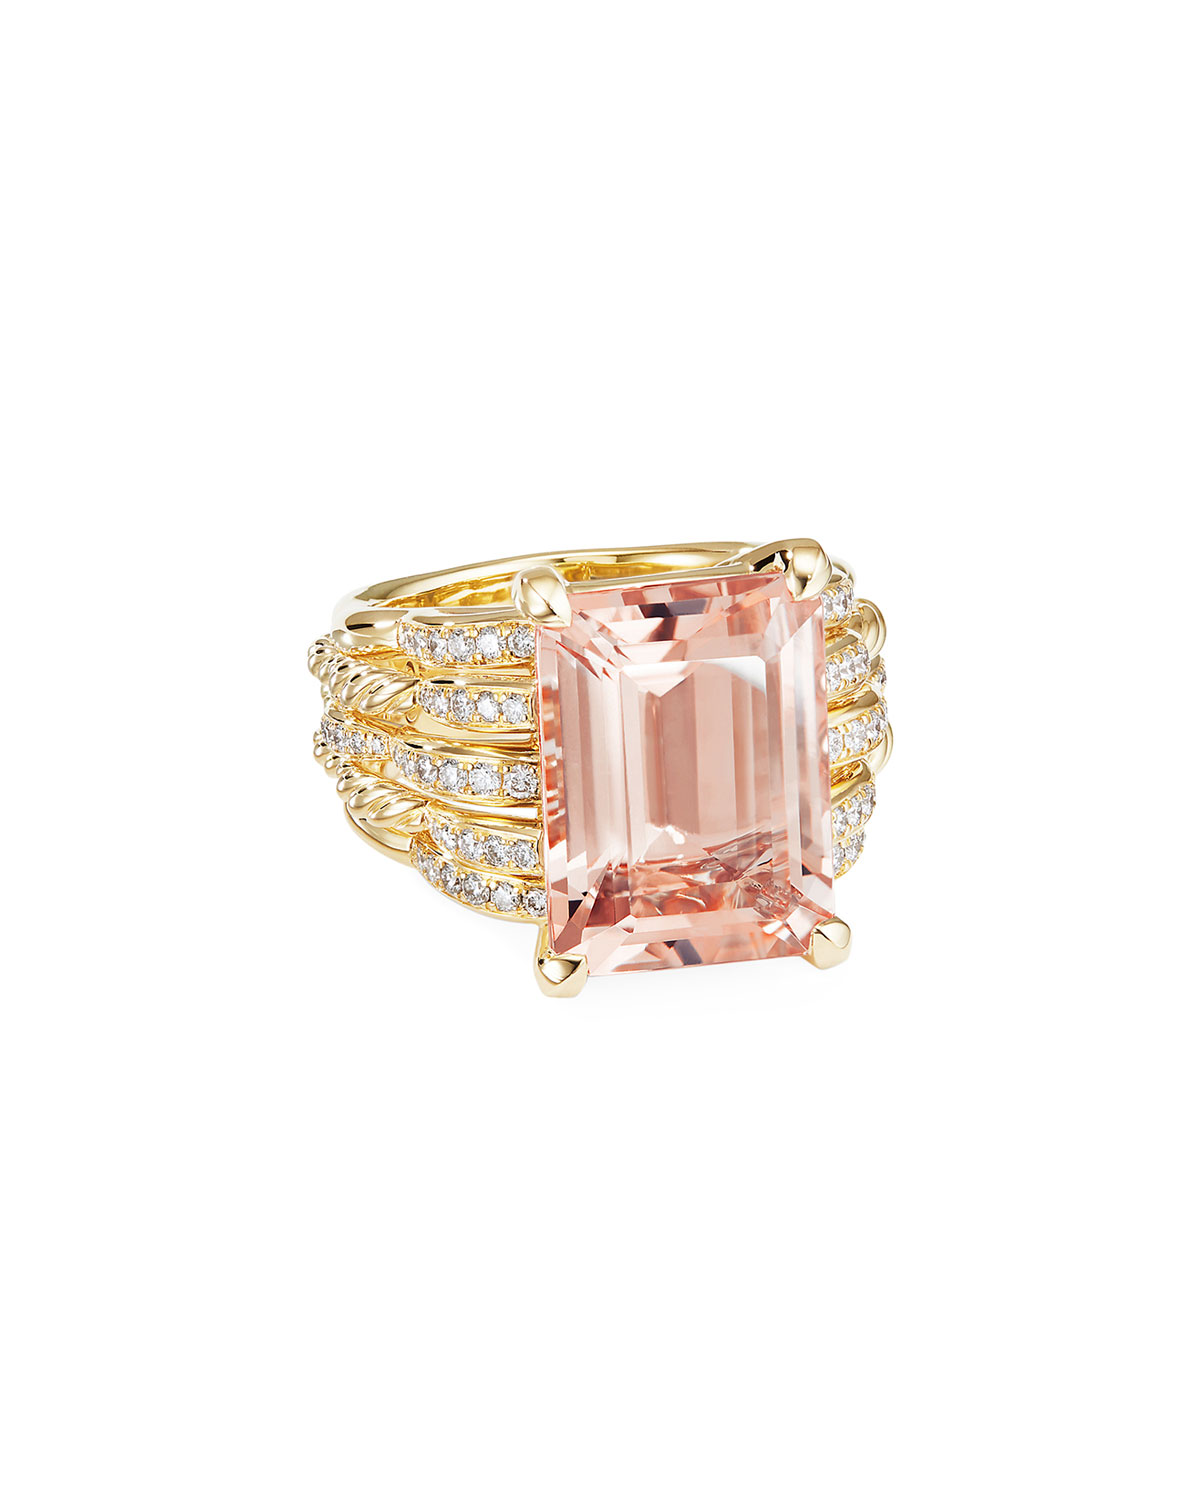 David Yurman Tides 18k Gold Diamond & Morganite Wide Ring, Size 8